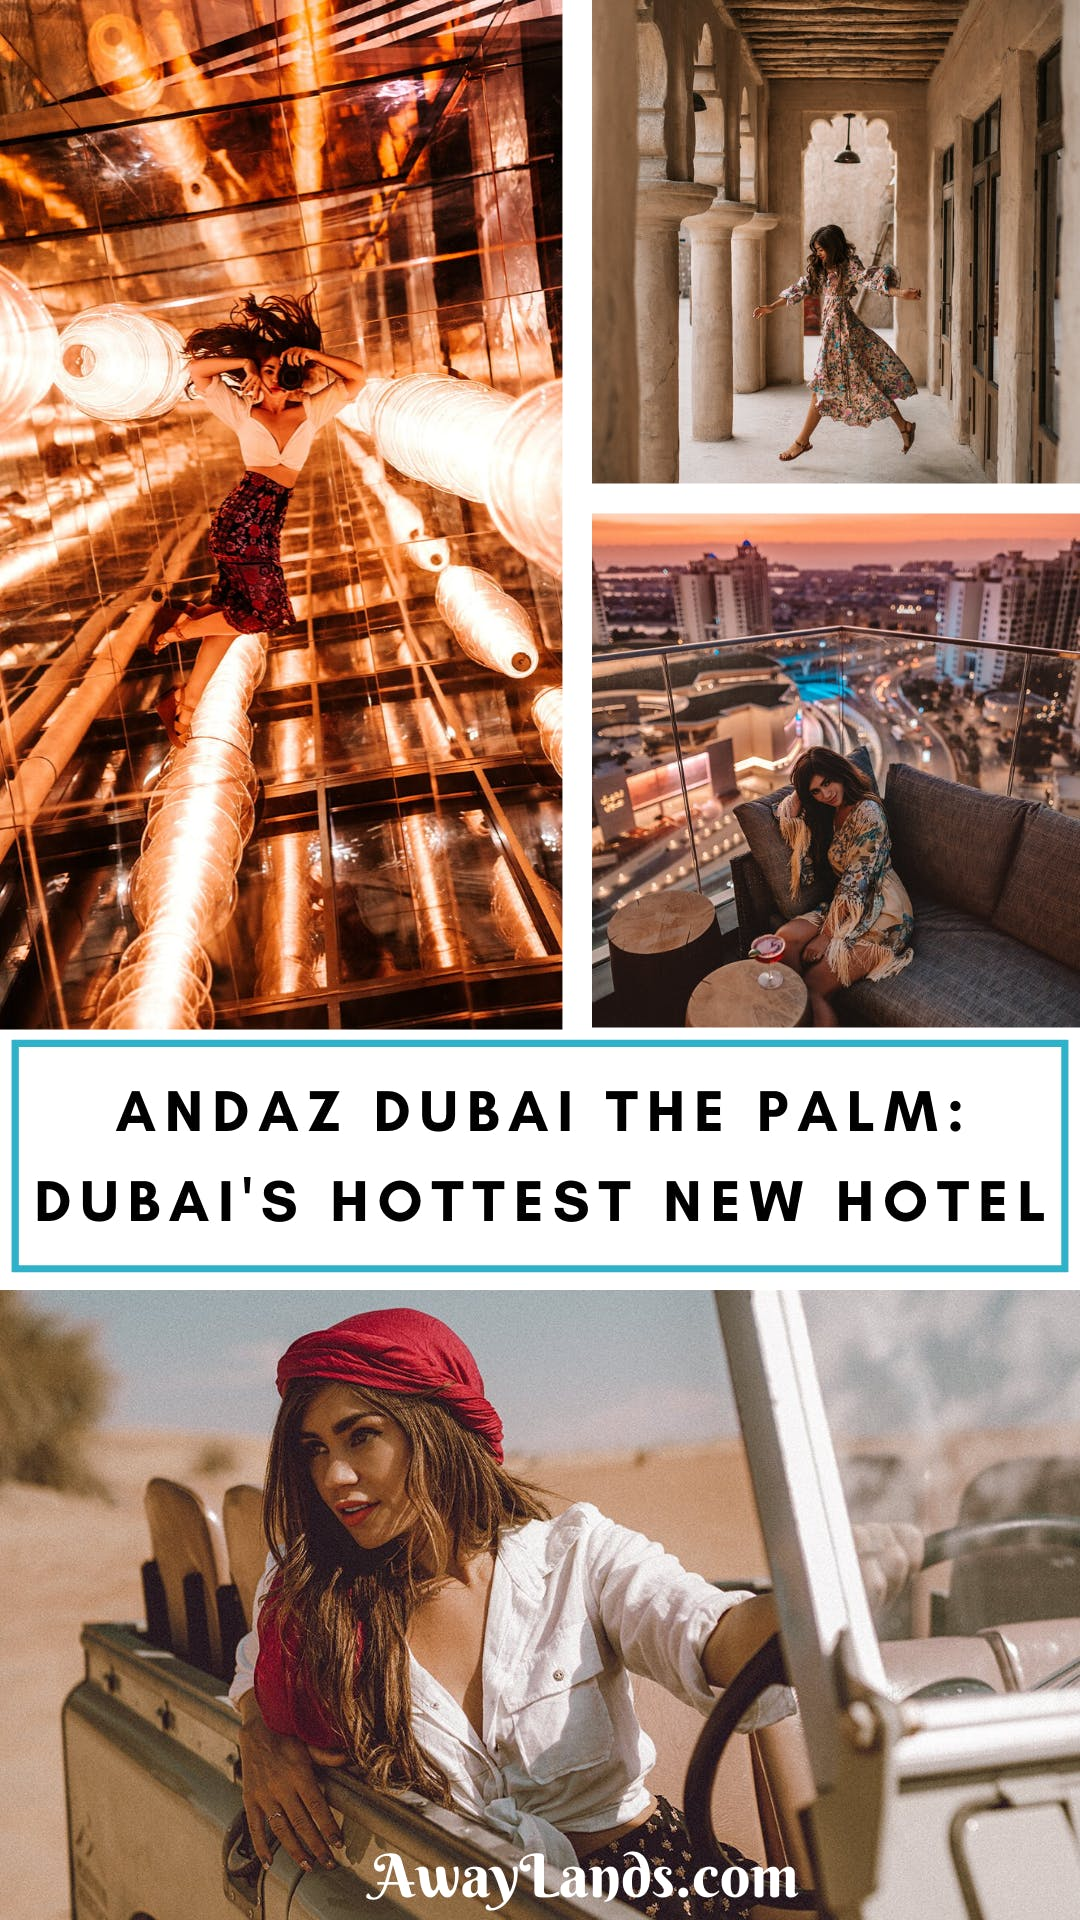 Andaz Dubai The Palm is Dubai's newest and hottest hotel with an amazing rooftop bar. Click here for a full review and video! #dubai #luxuryhotel #luxurytravel | Dubai hotel luxury | Dubai hotel interior | Dubai hotel room | Dubai hotel pool | Dubai hotel lobby | Dubai hotel view | Dubai hotel design | Dubai hotel beach | Dubai hotel photography | Dubai hotel Palm | Dubai travel things to do in | Dubai travel hotel | Dubai travel amazing views | Dubai travel where to stay | Dubai travel luxury